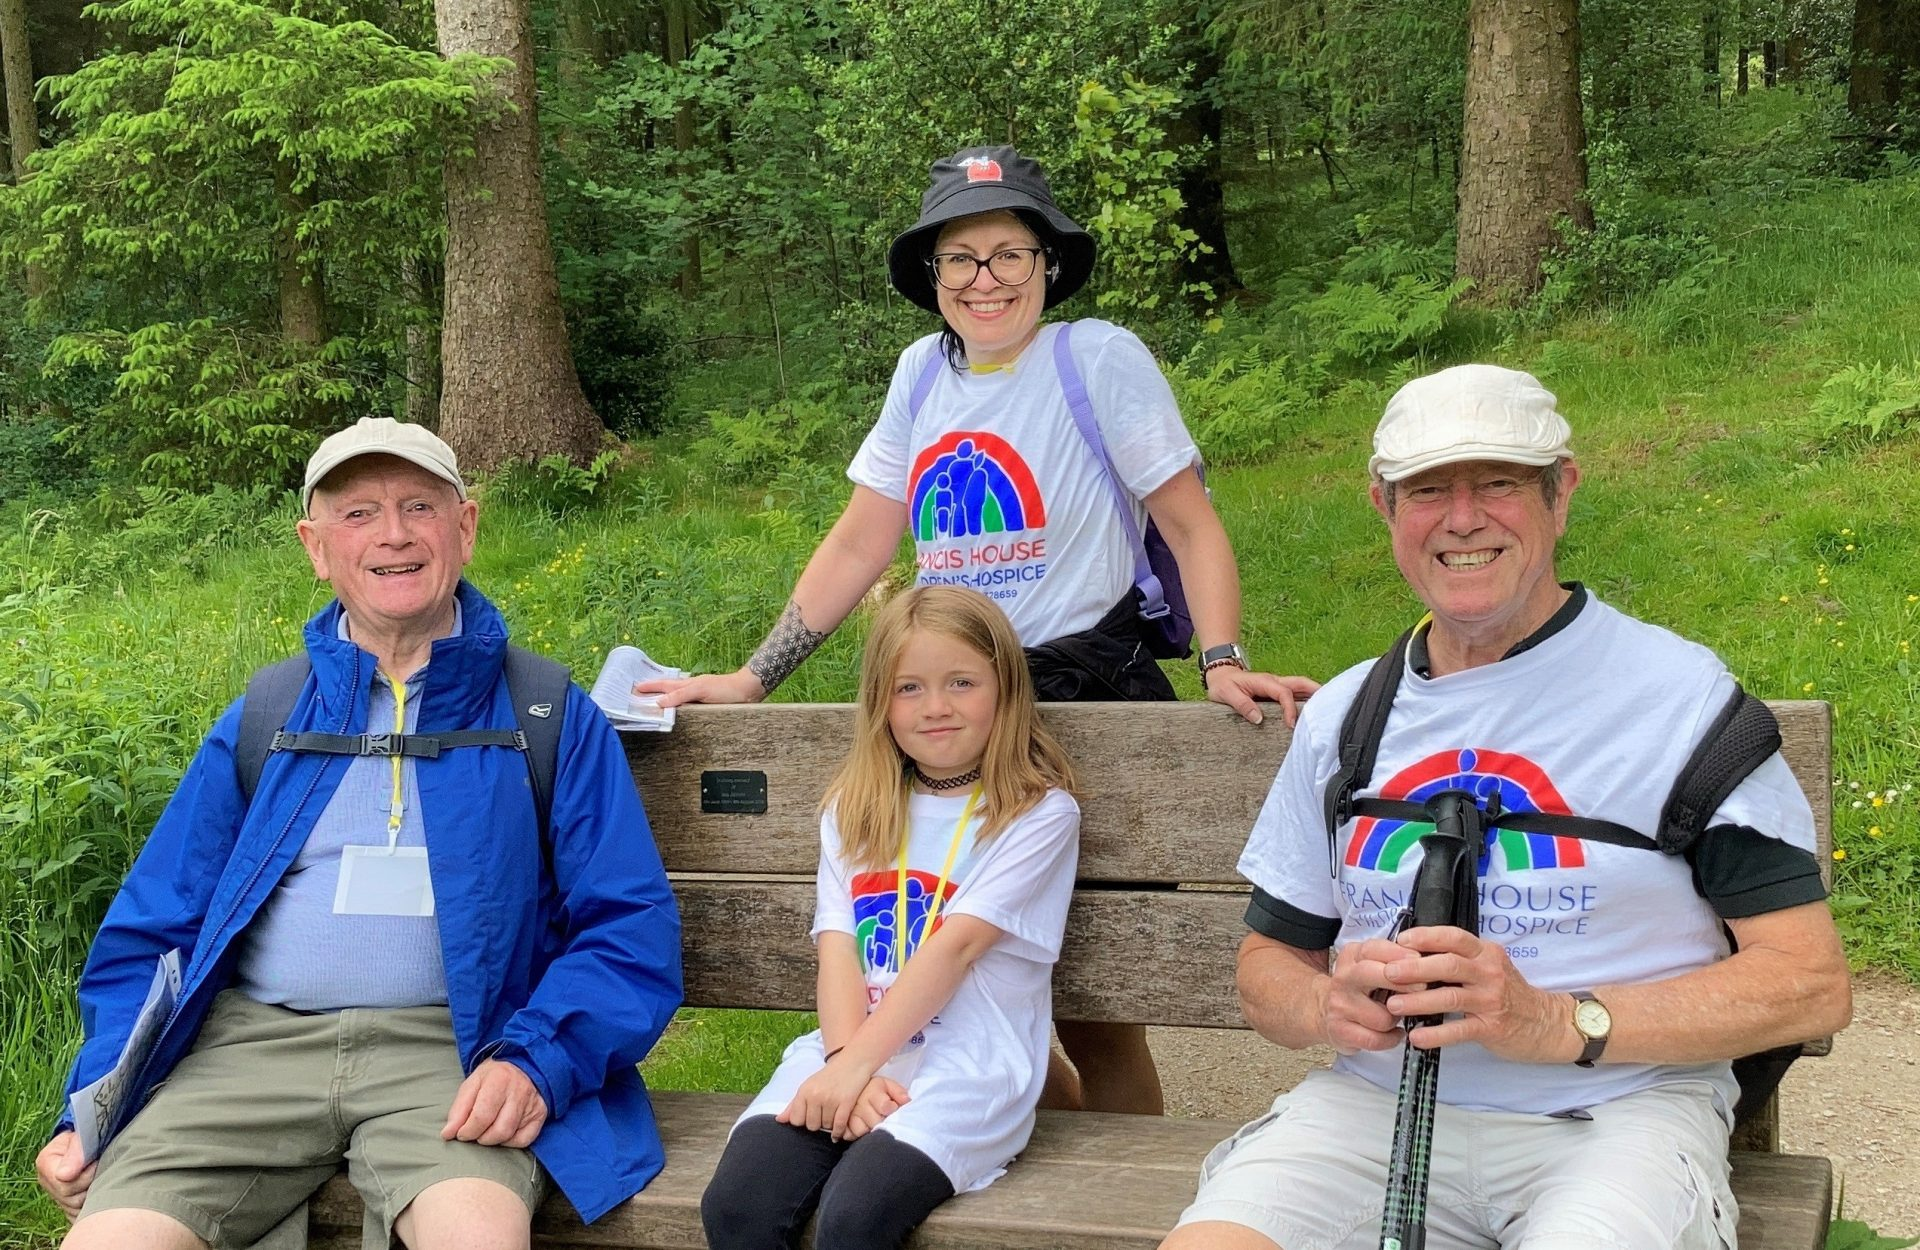 Family sat on bench in forest